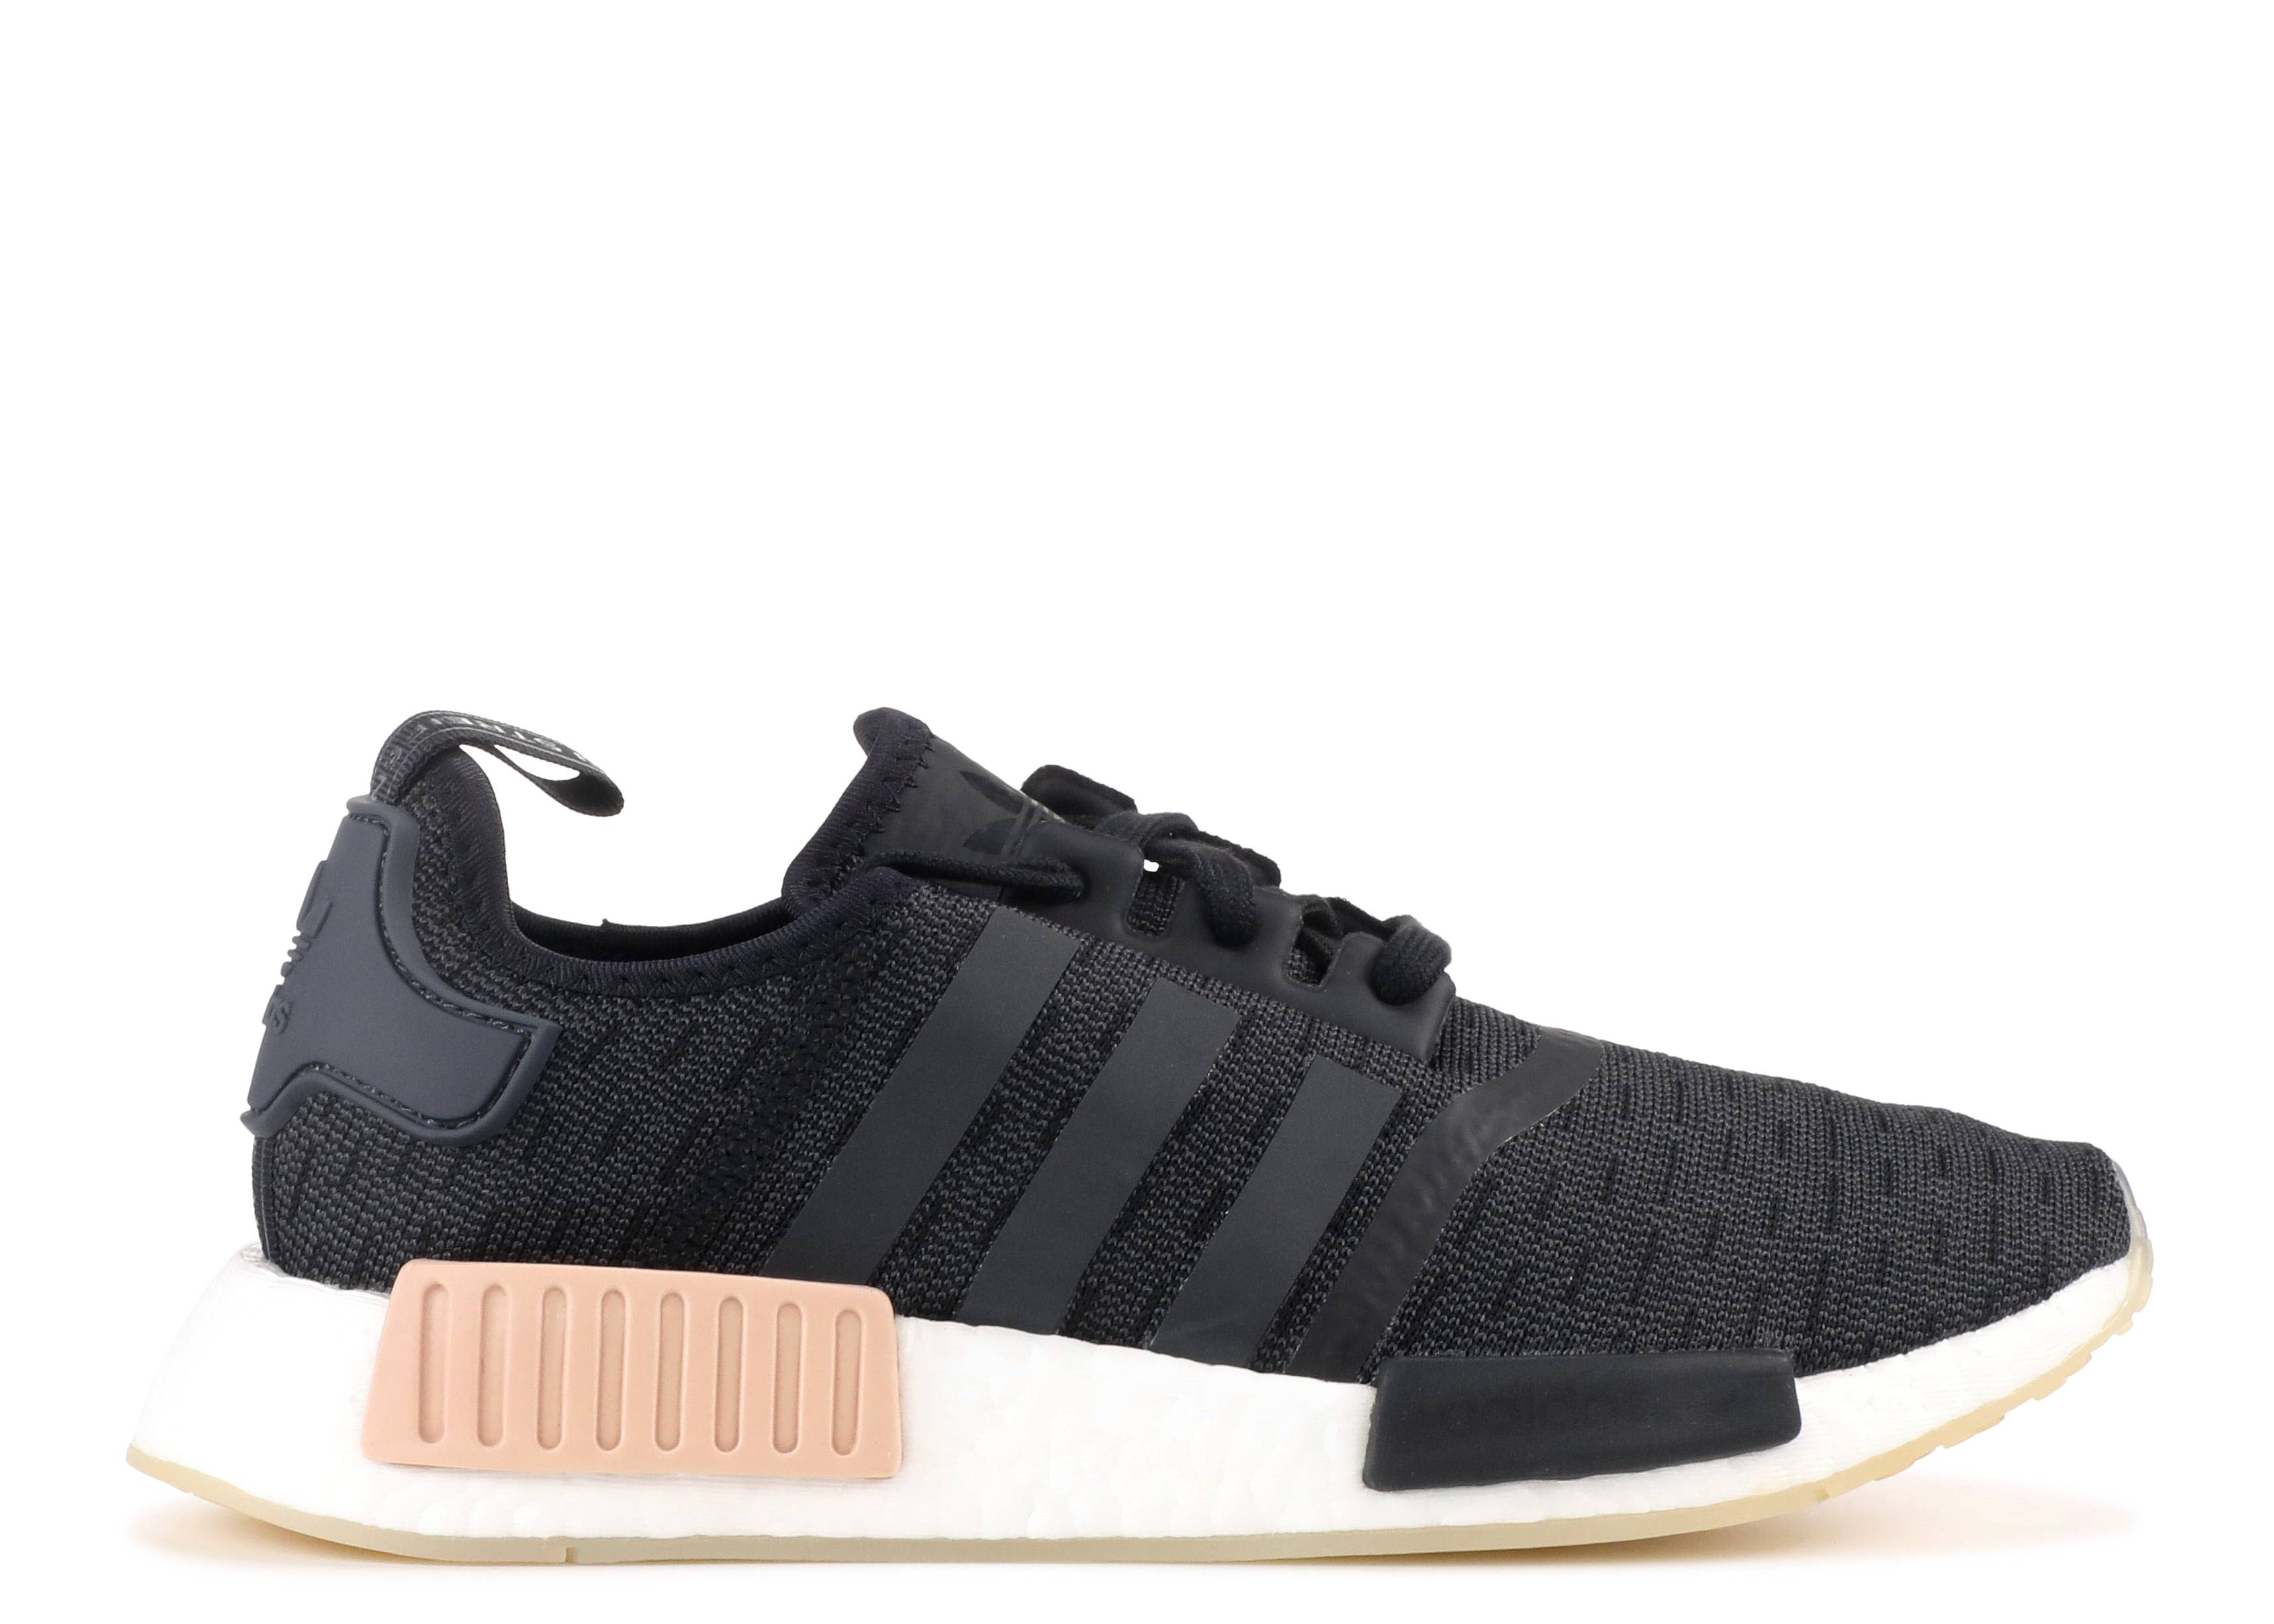 new product 6ac8a 5c76a NMD R1 W